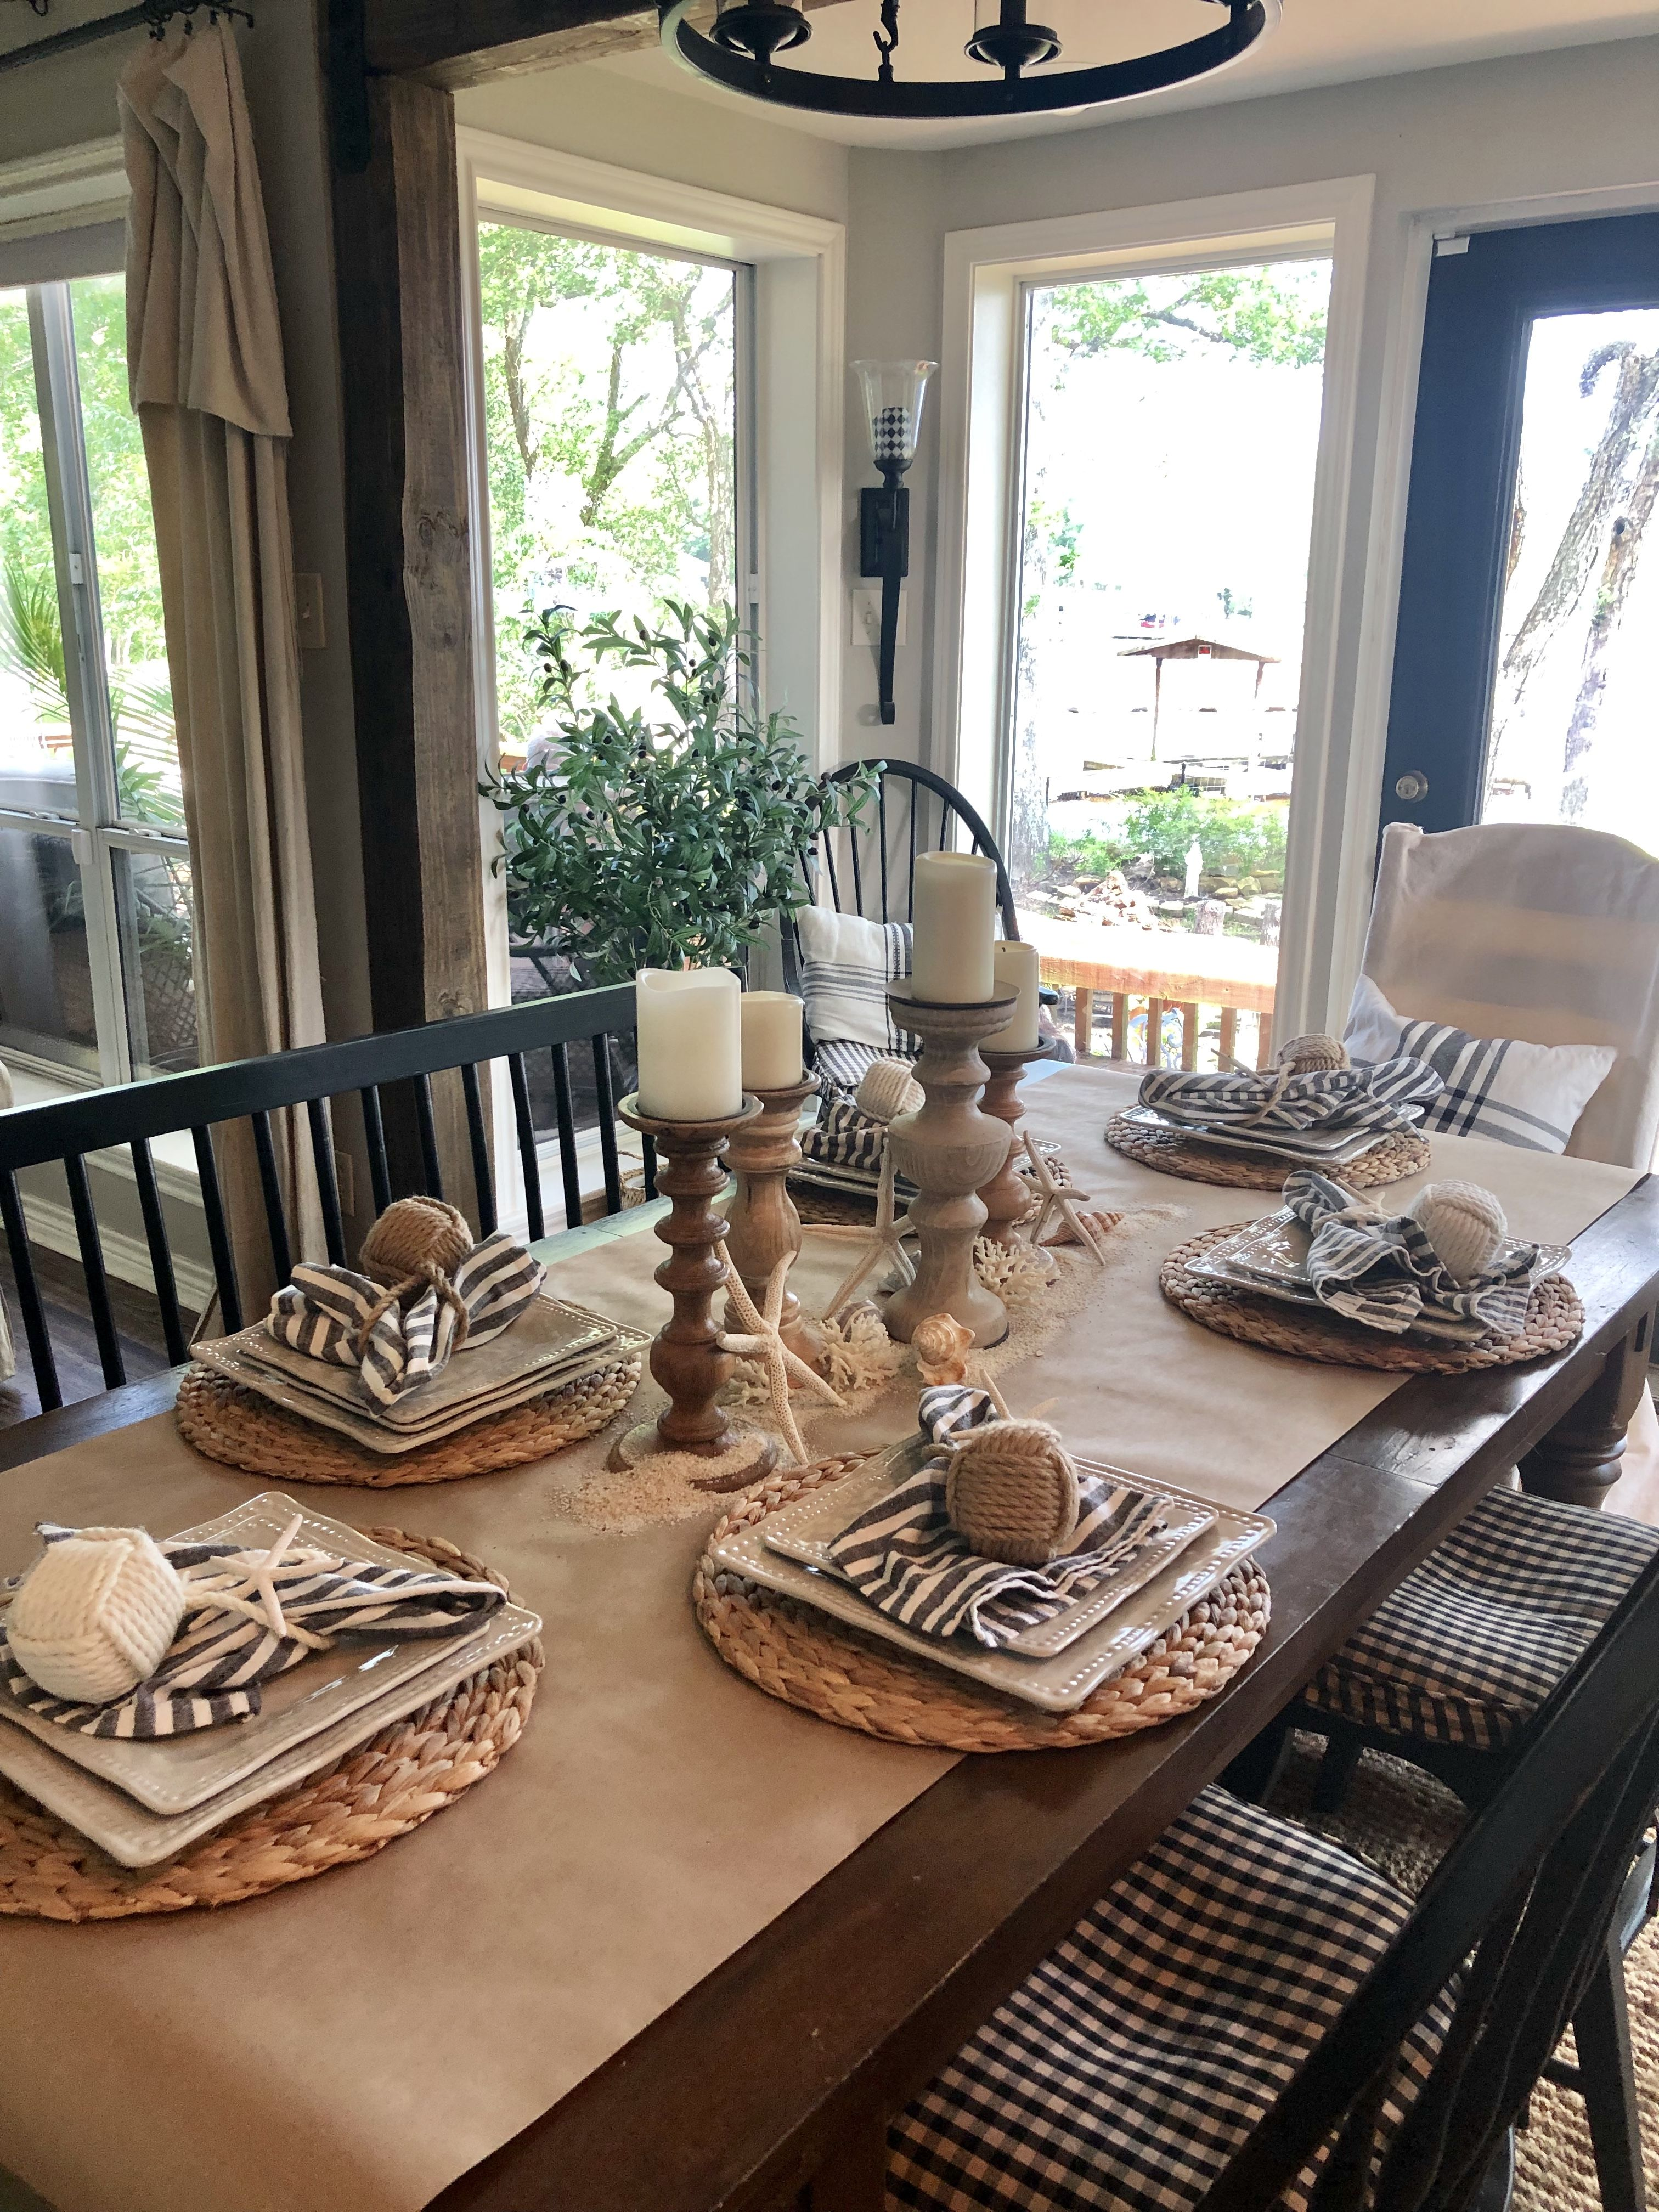 In This Post I M Sharing 2 Simple Tablescapes For Your Summer Entertaining Summer Table Ideas Summer Ta Summer Tables Fall Dining Table Pretty Table Settings